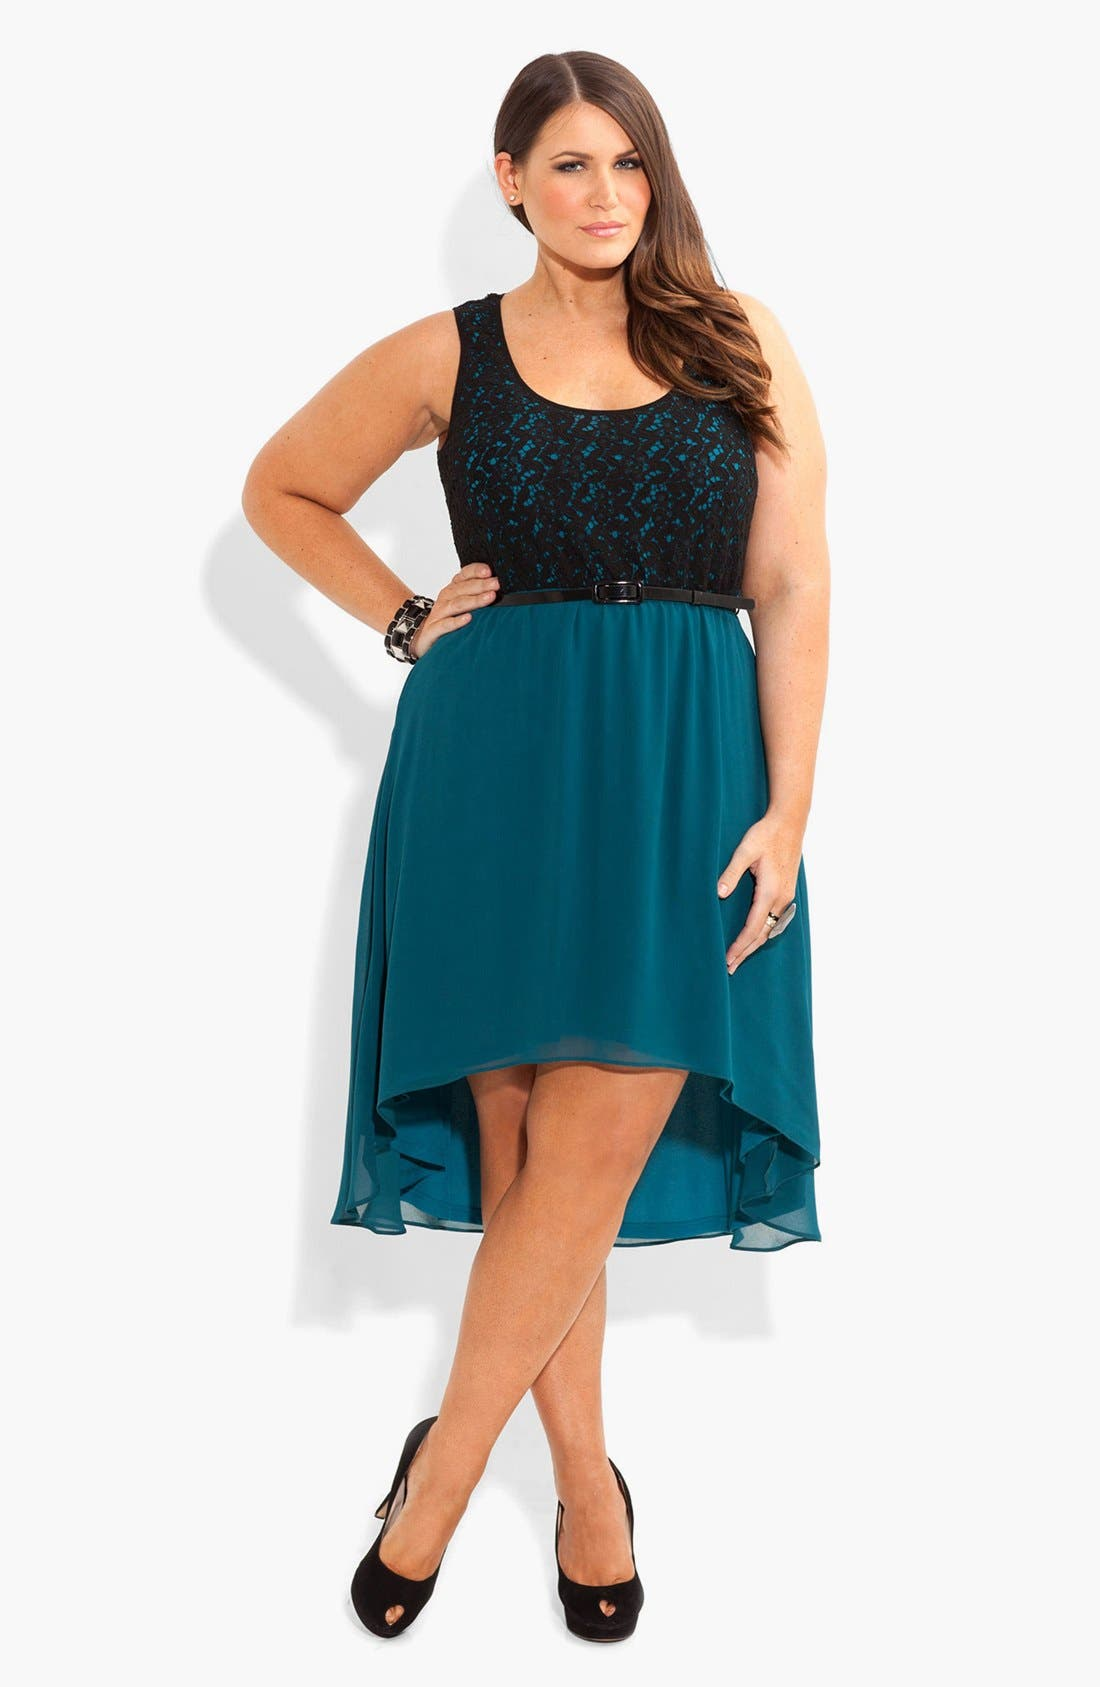 Alternate Image 1 Selected - City Chic High/Low Mixed Media Dress (Plus Size)